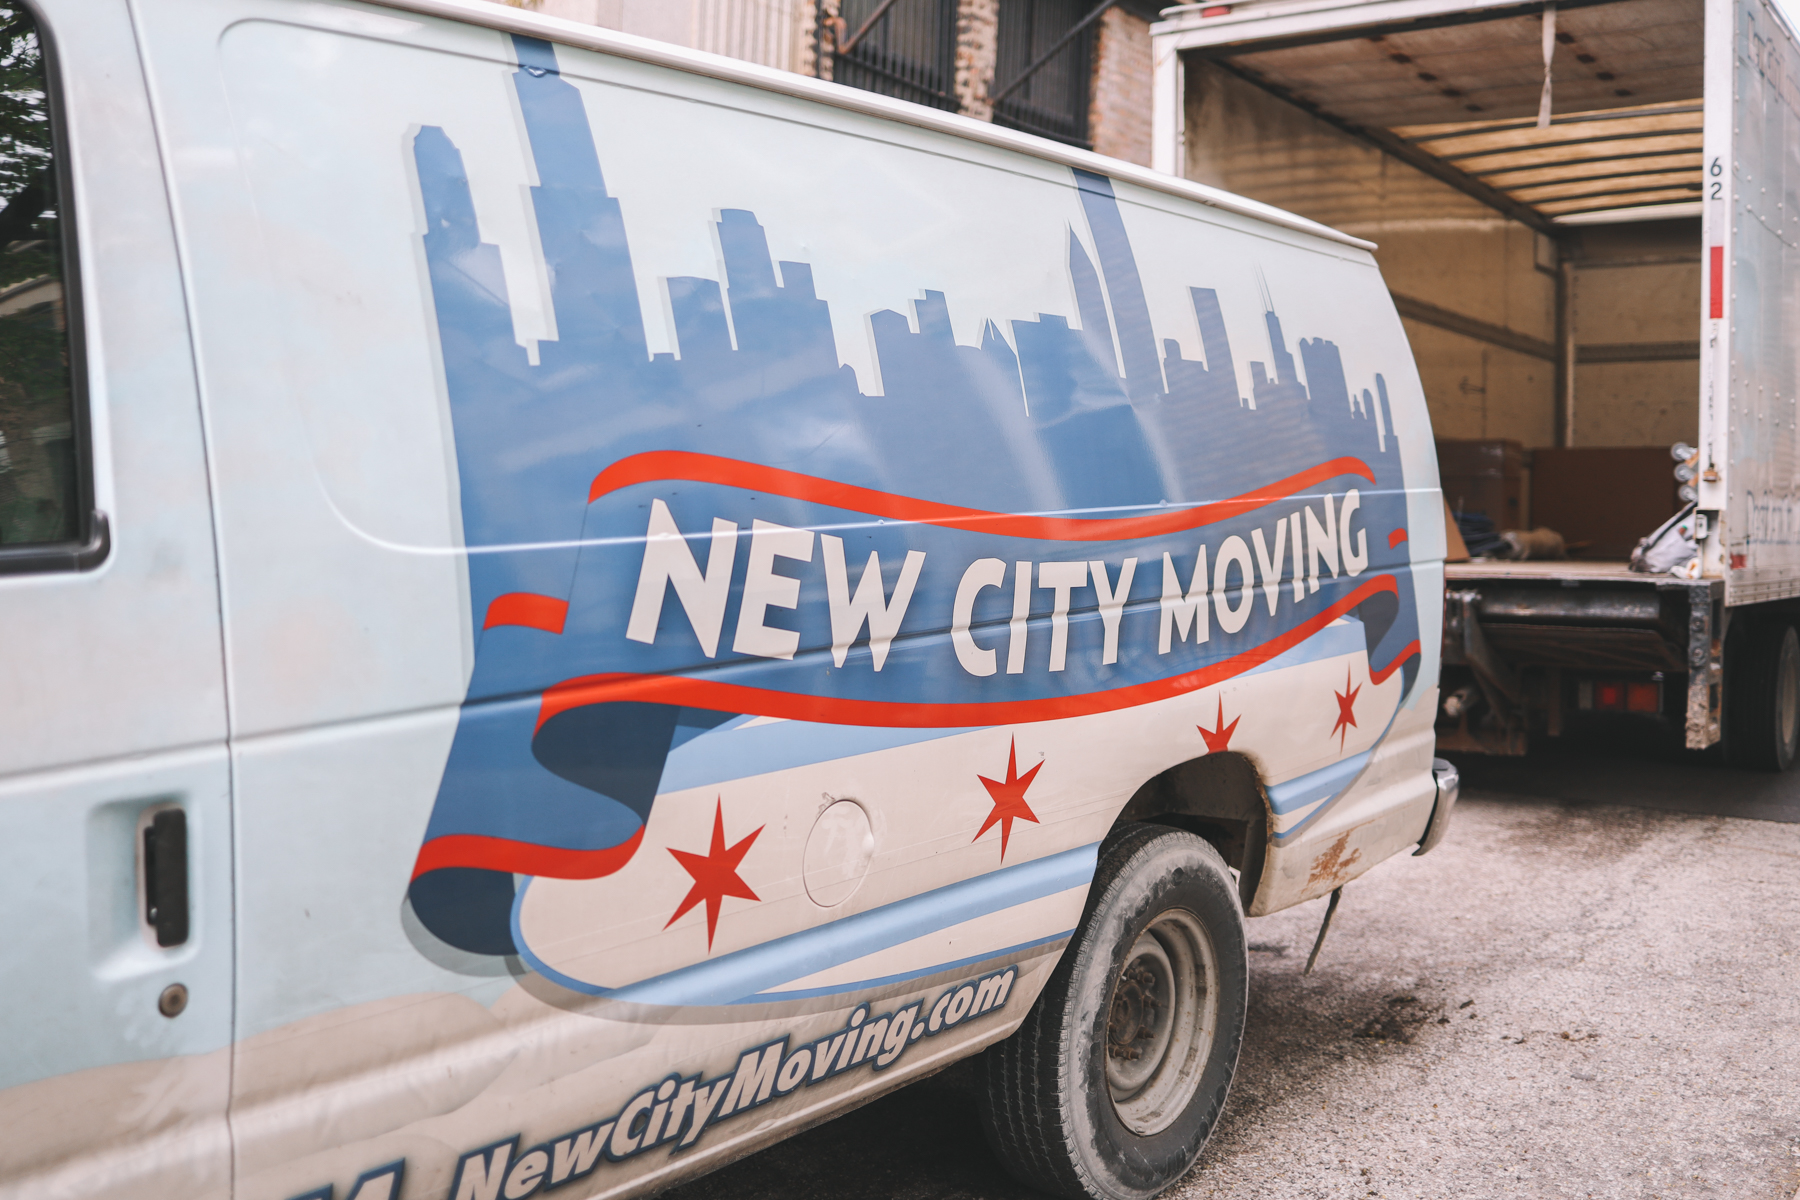 New City Moving Services